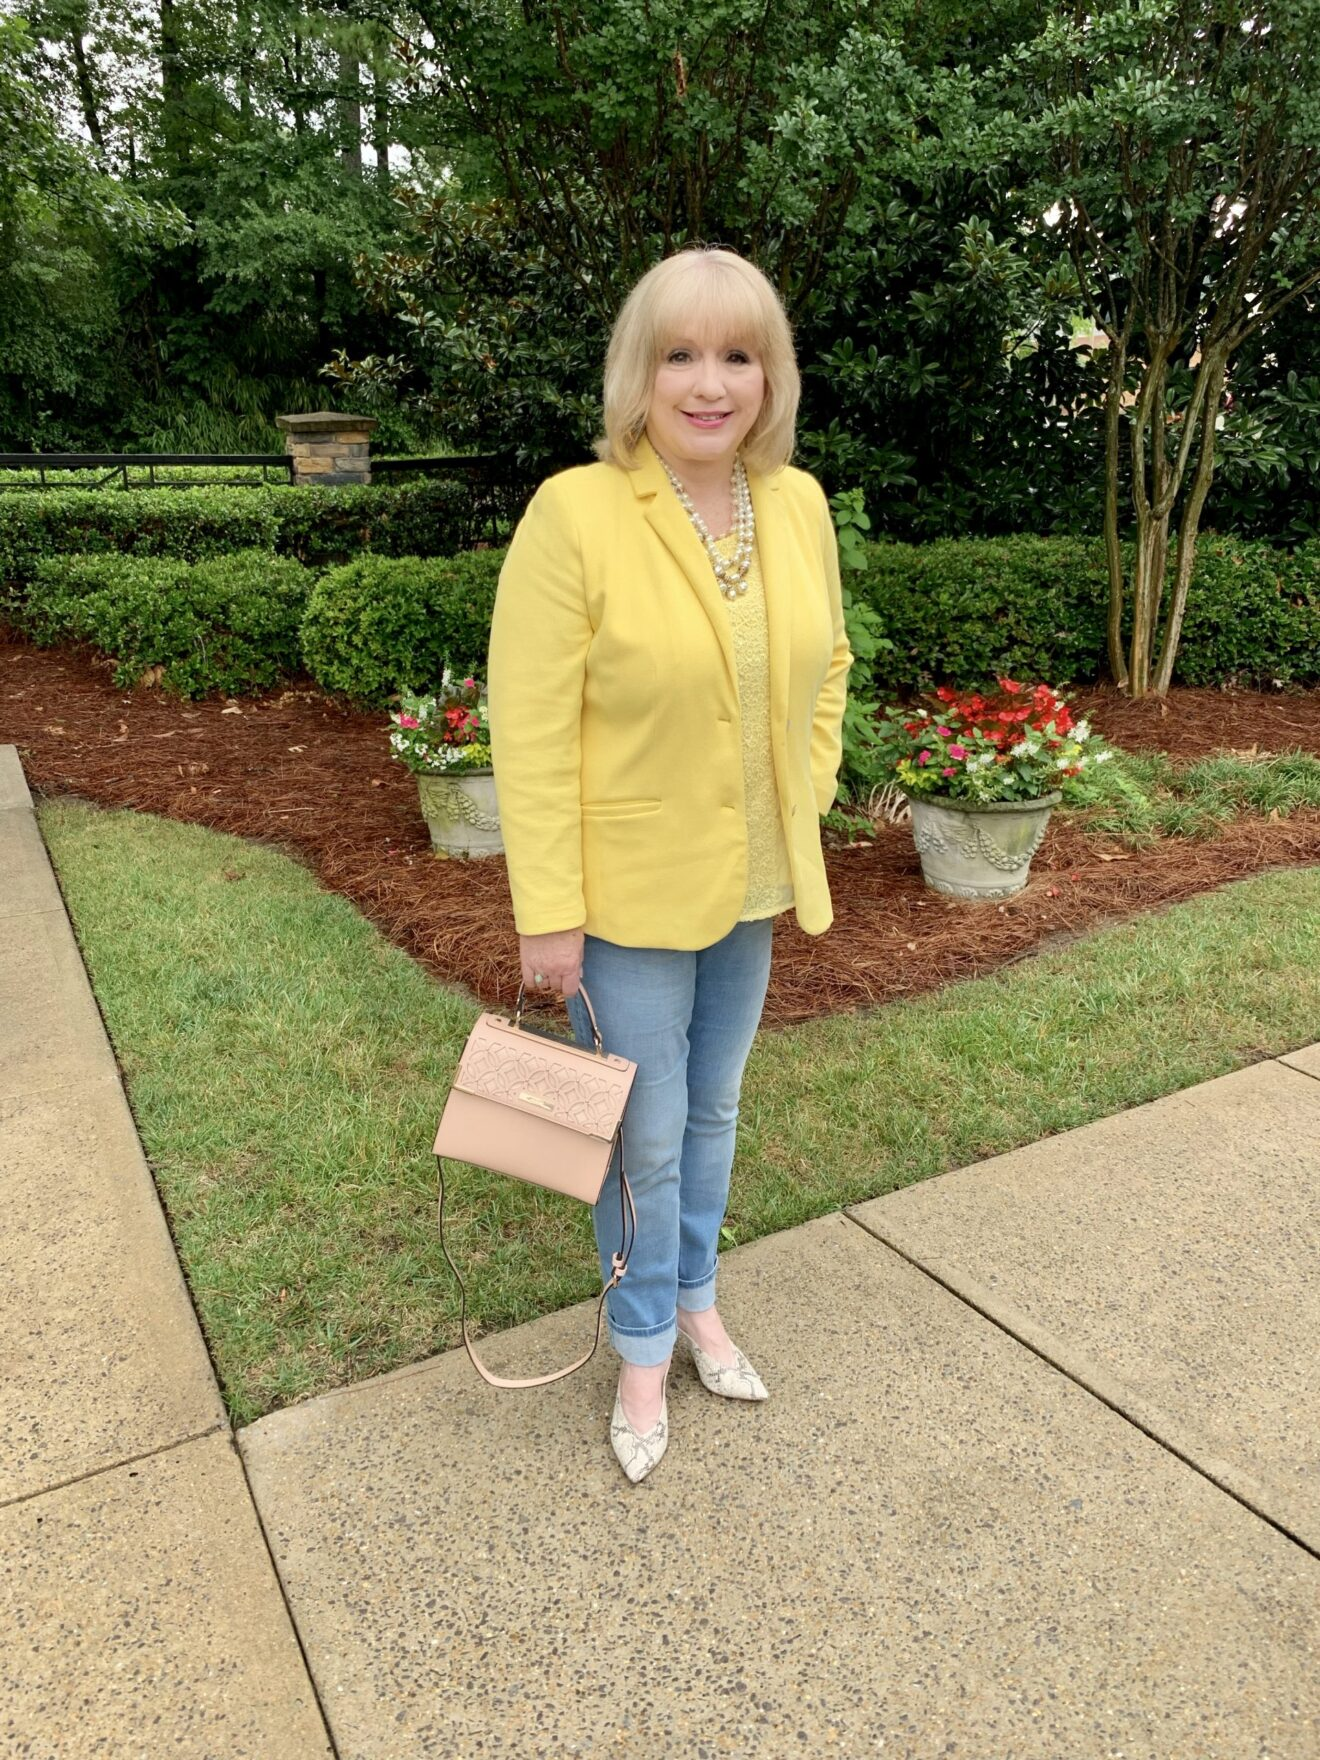 Style Story Interview Classy Colorful Confidence @StyleShennanigans Shannon Holmes Fashion Over 50 60 Confident Casual Yellow Blazer Outfit Story Behind The Cloth scaled